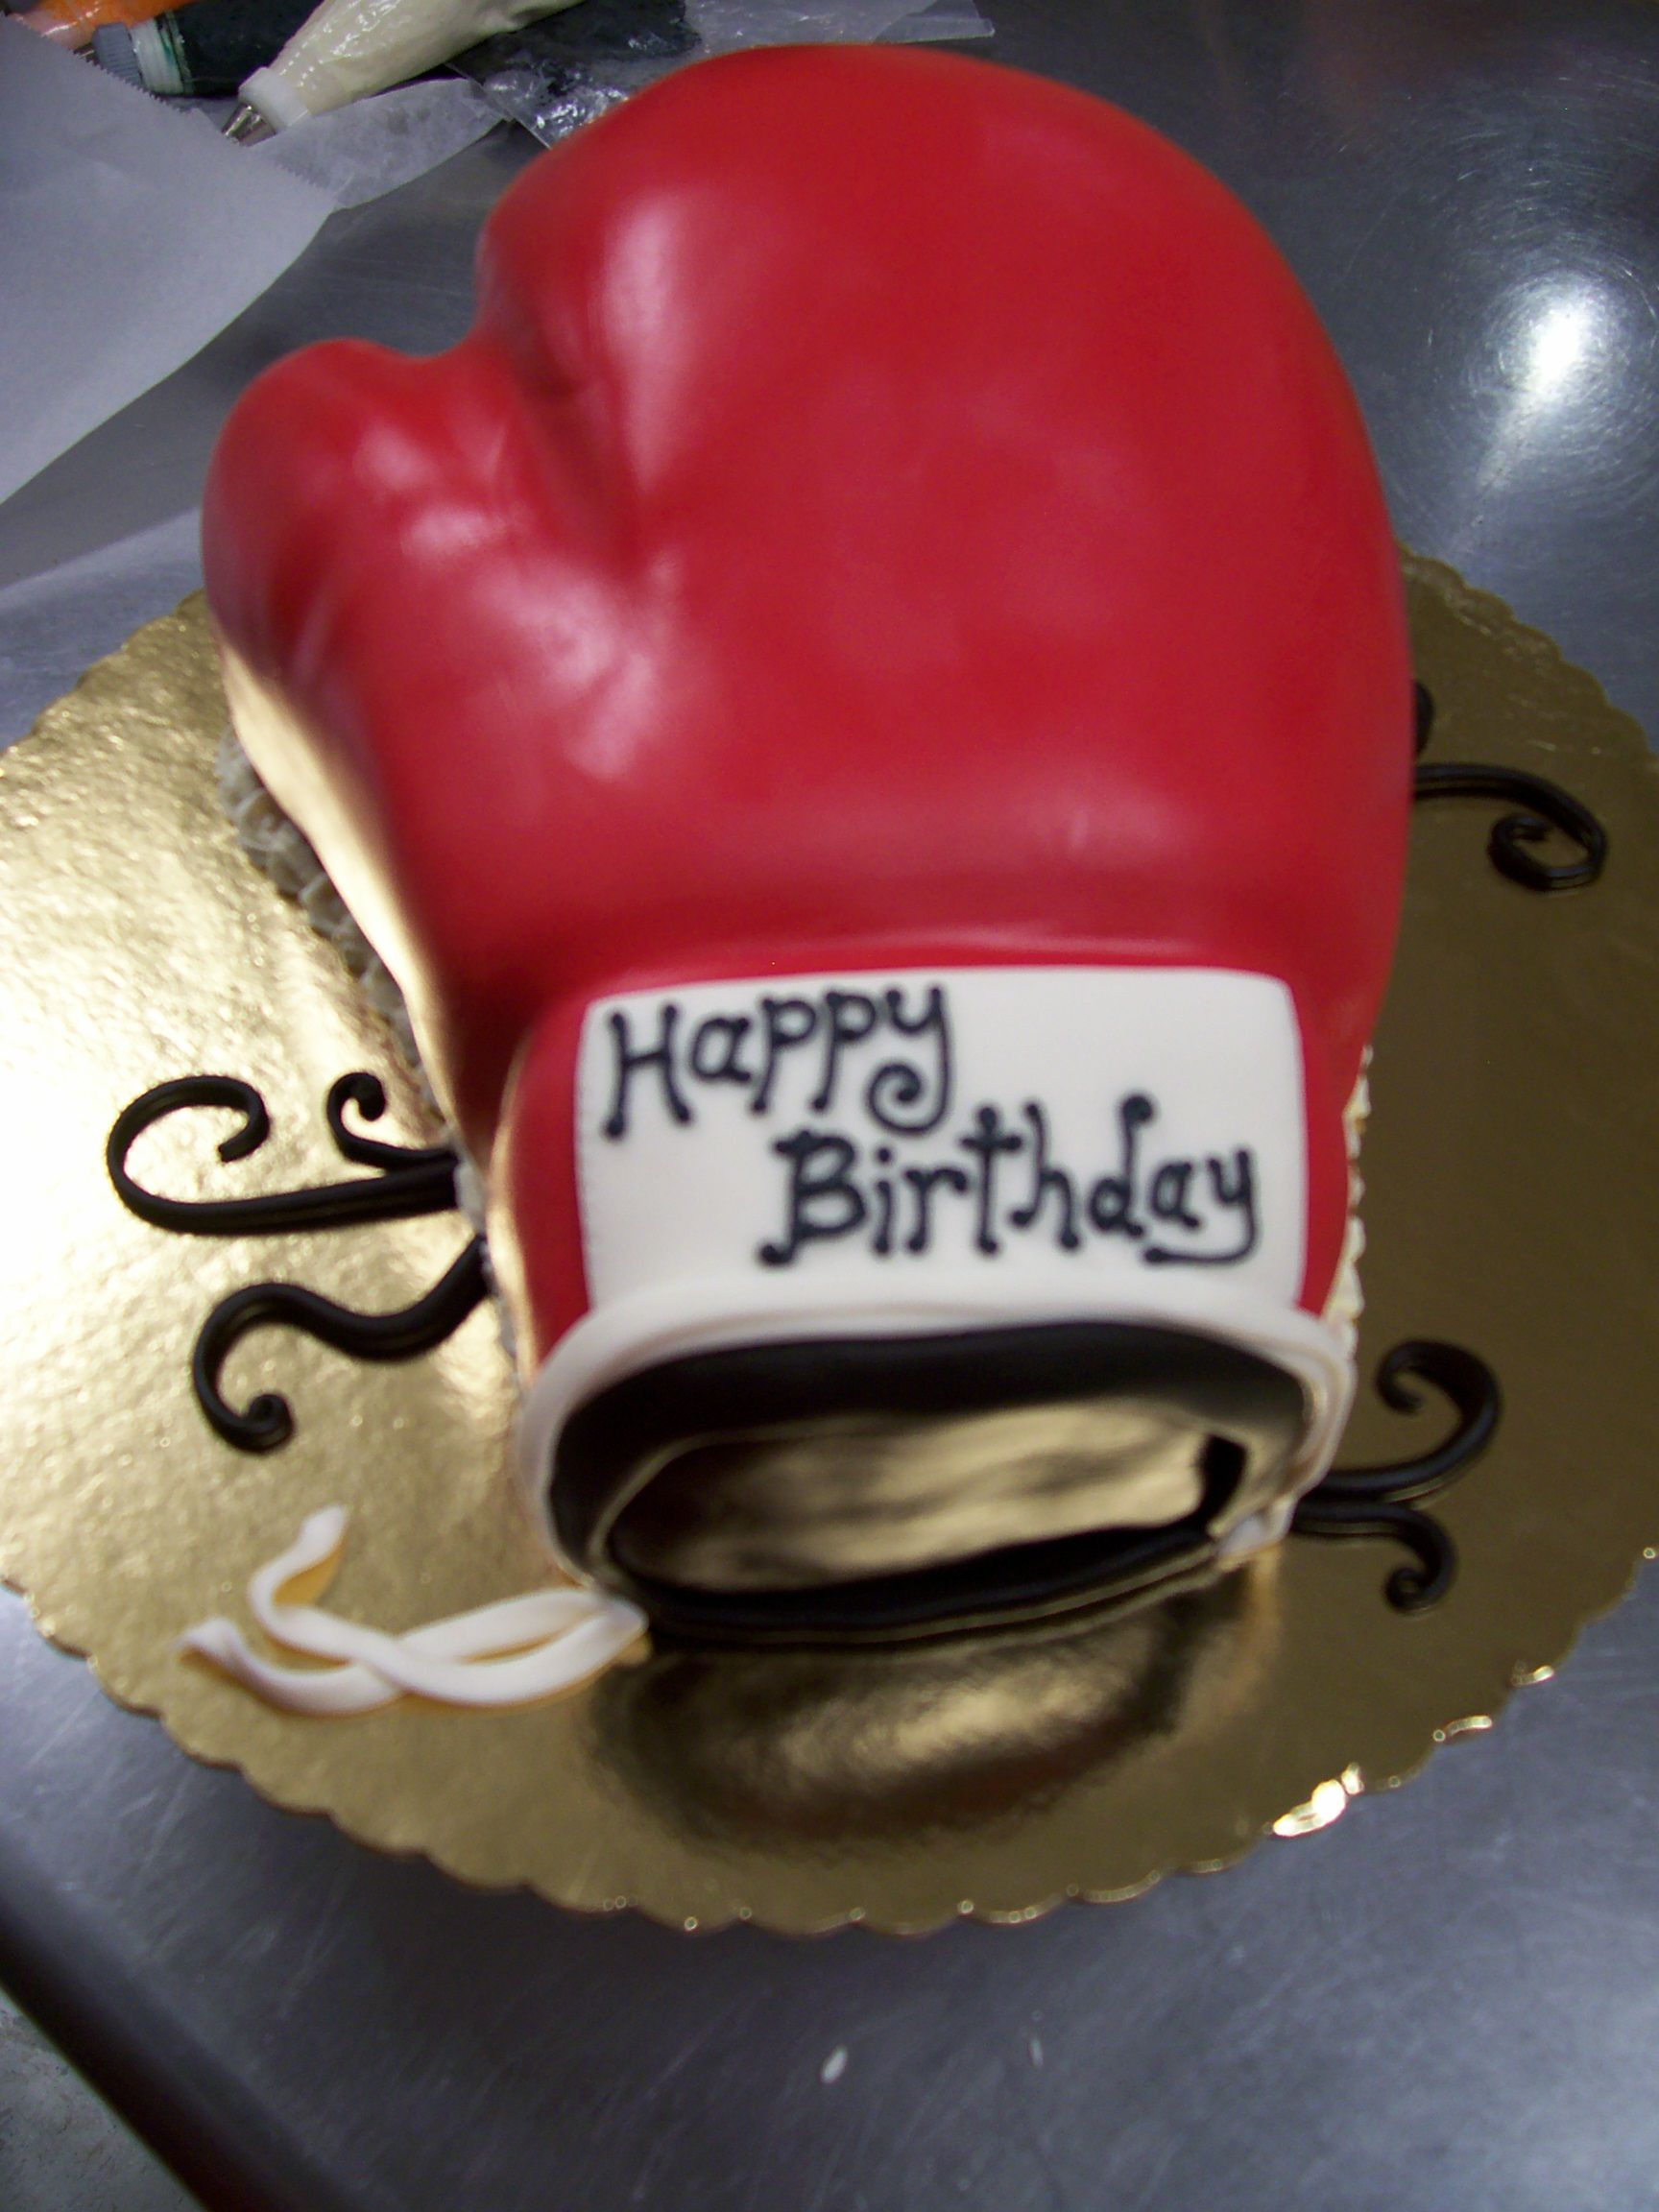 Shiv Naresh Teens Boxing Gloves 12oz: Sweety Pies Bakery * Cakery * Cafe